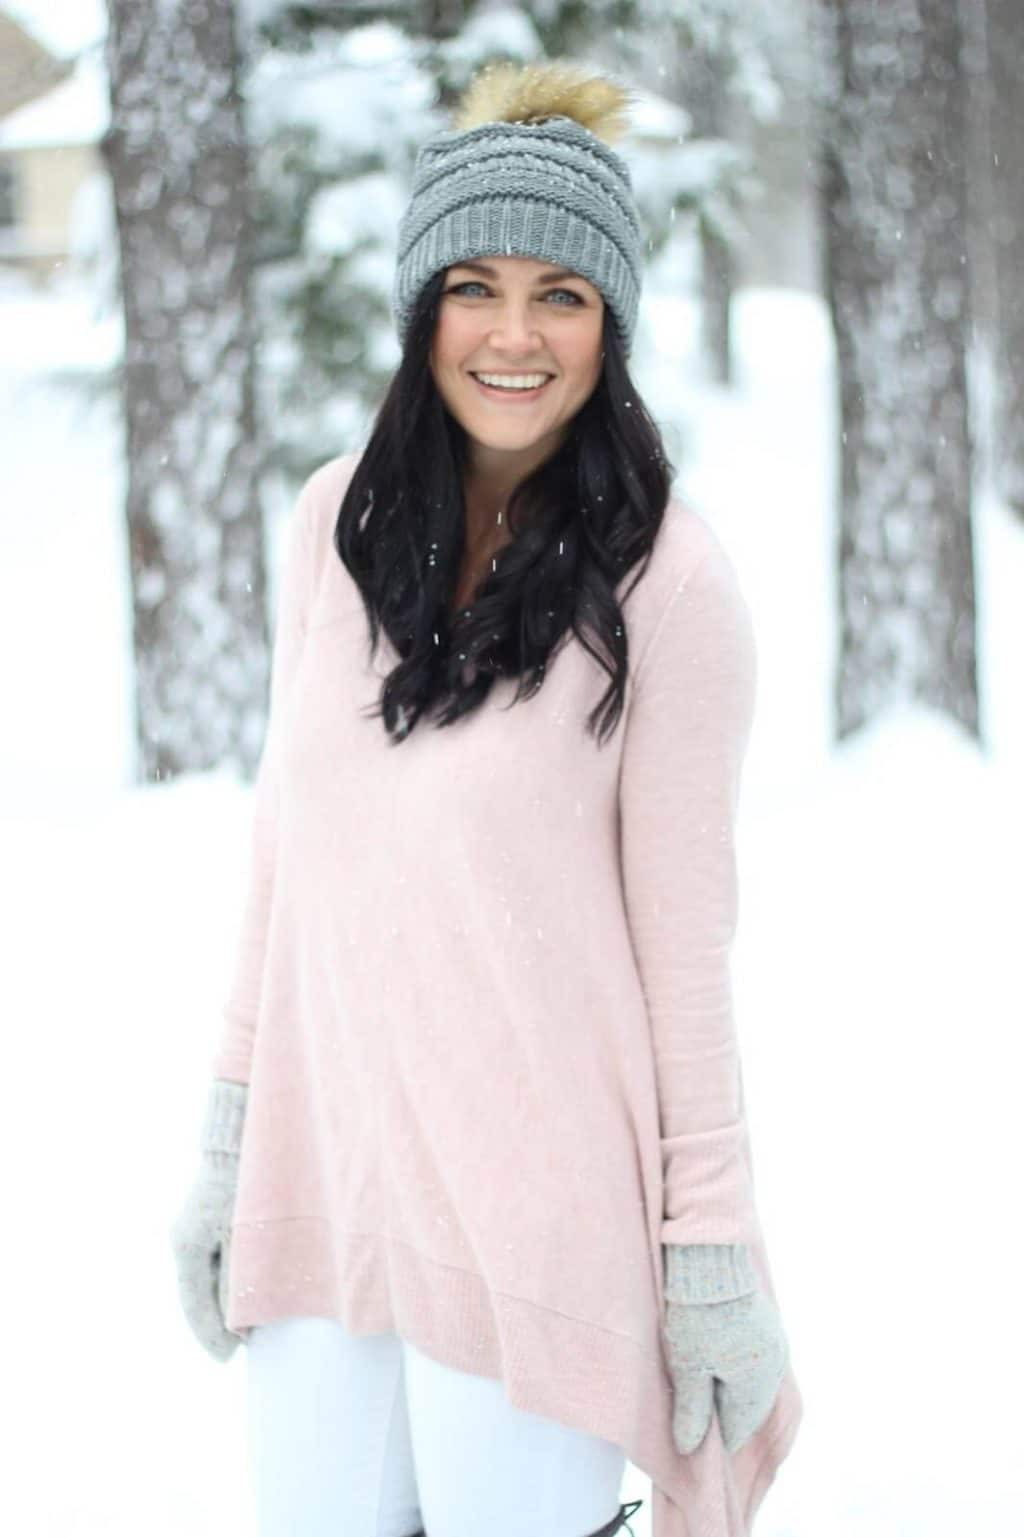 Light pink sweater with white jeans in the winter